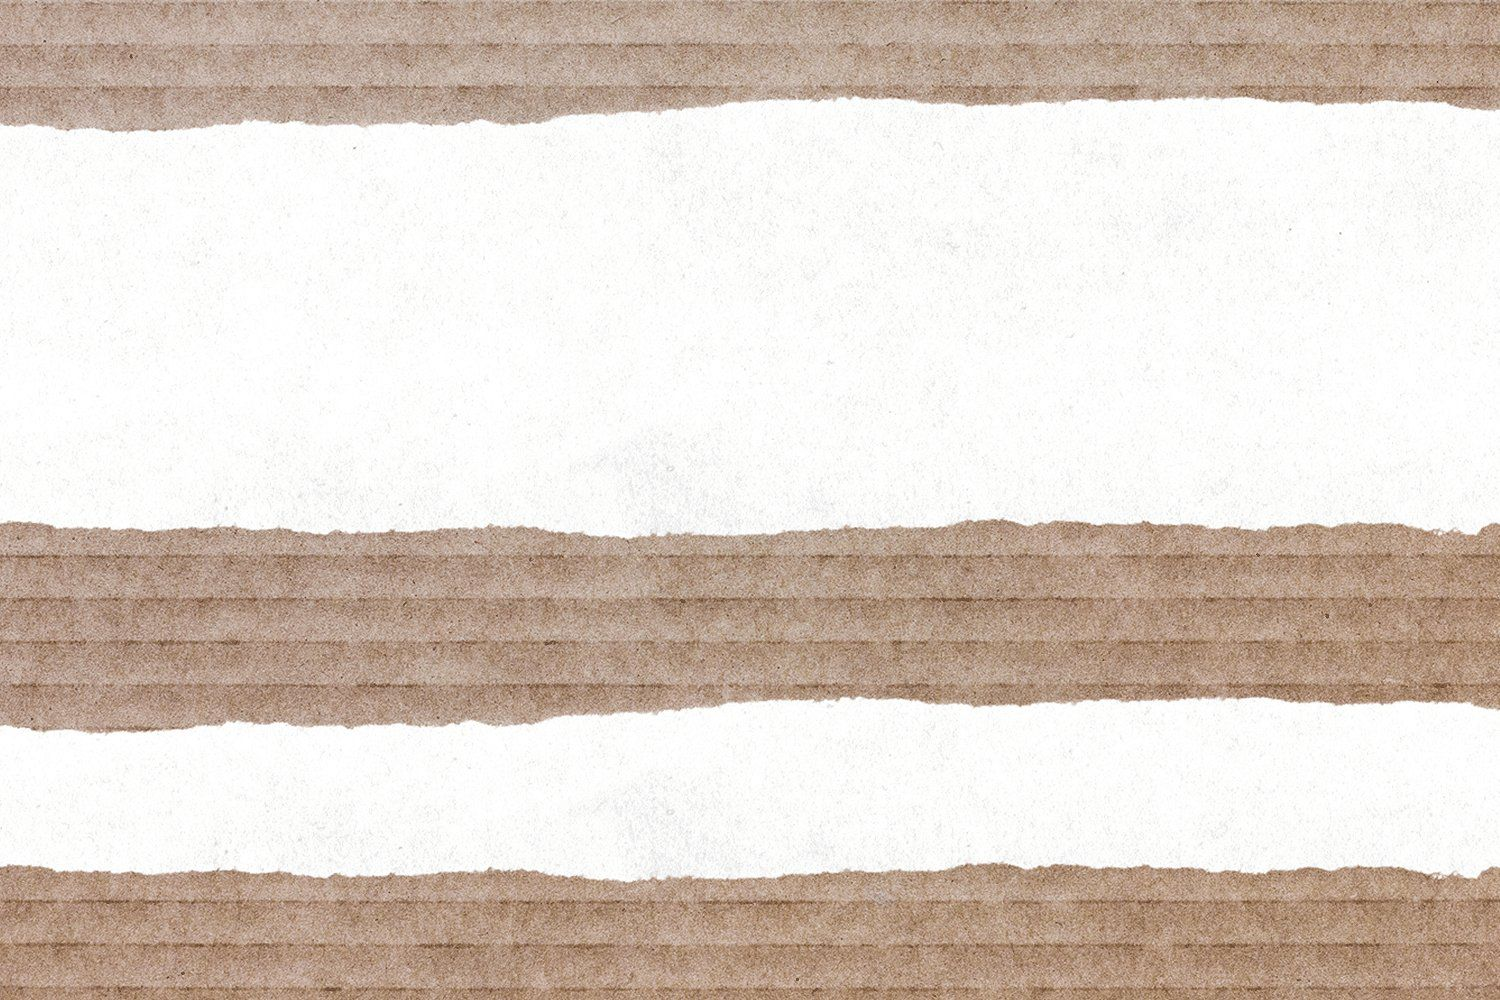 Drawing Paper Texture Png